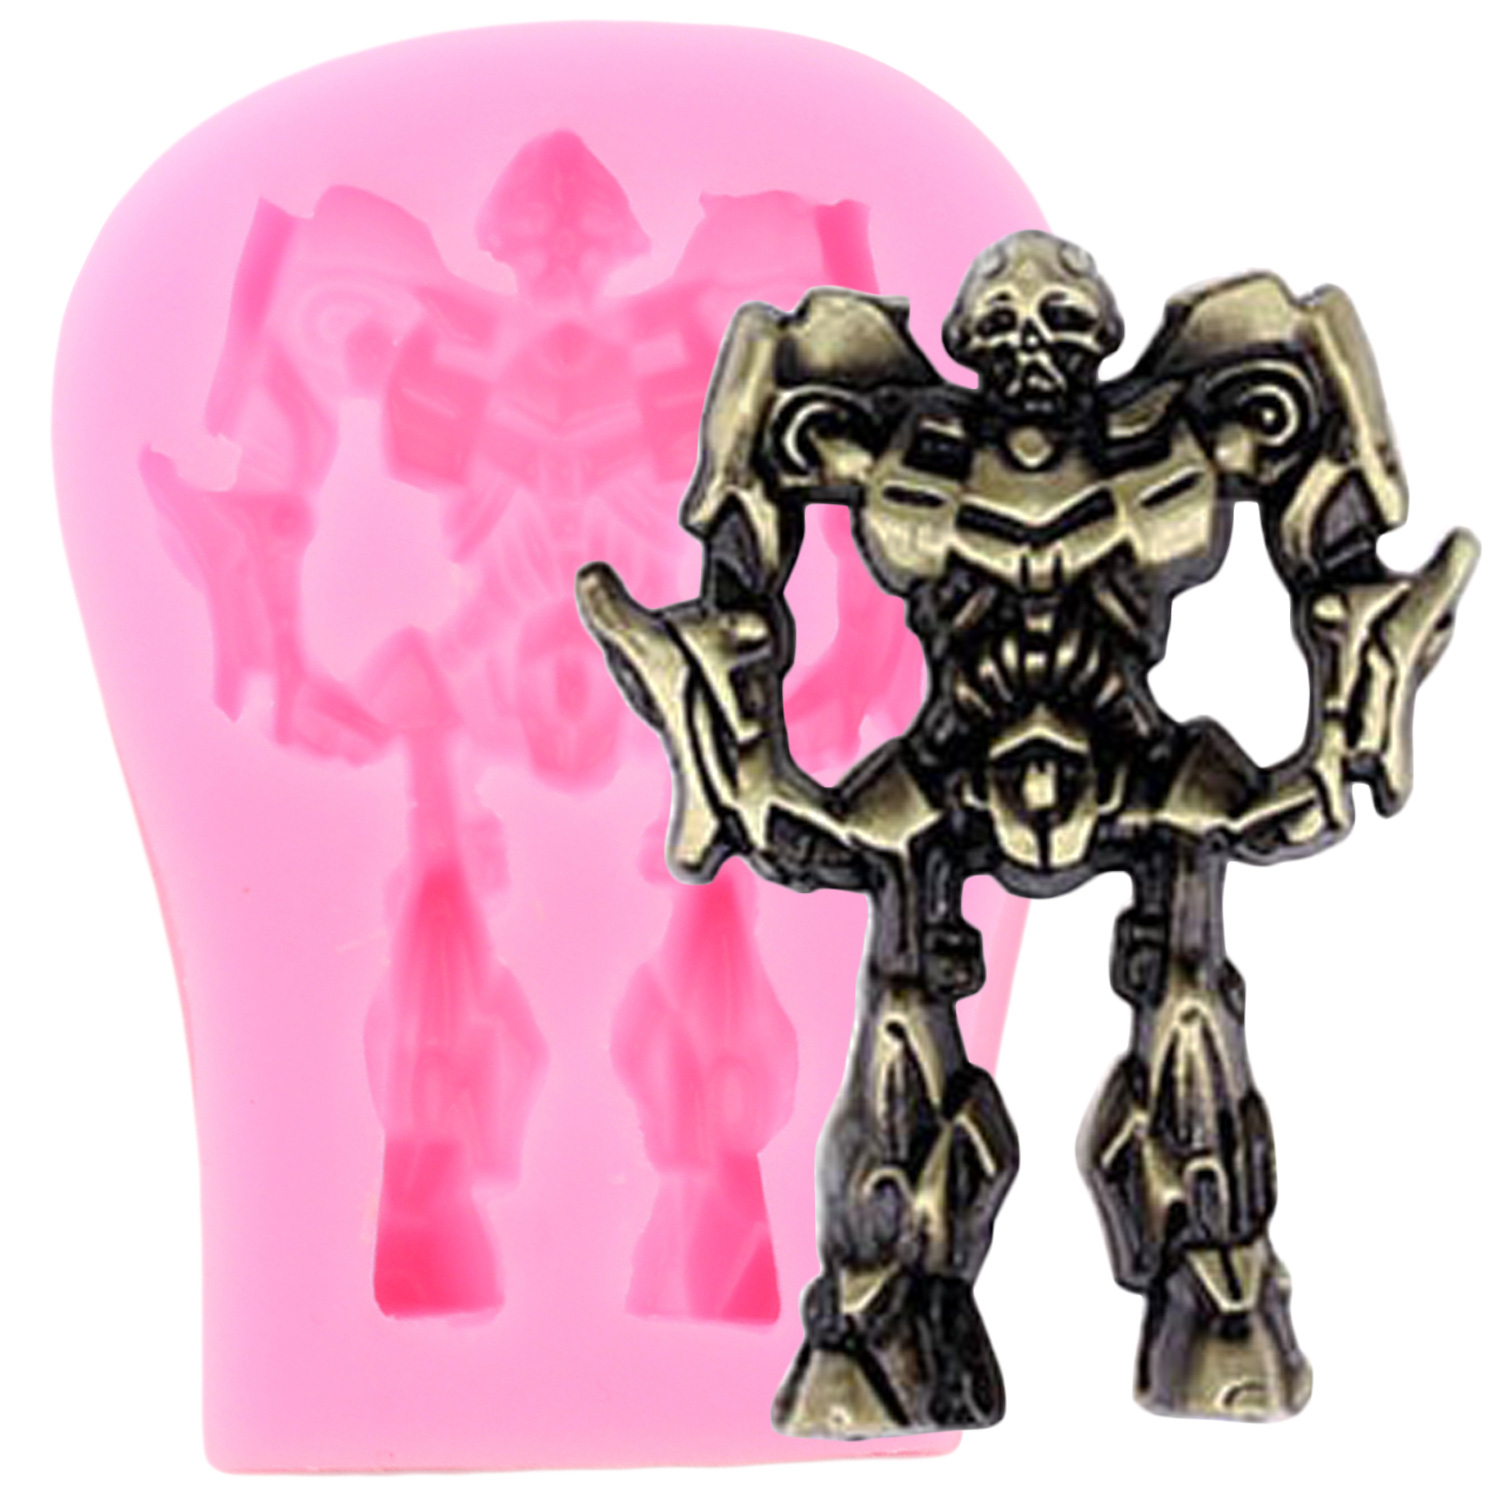 Robot Silicone Mold Baby Birthday Party Cake Decorating Tools Fondant Cookie Baking Chocolate Gumpaste Candy Molds